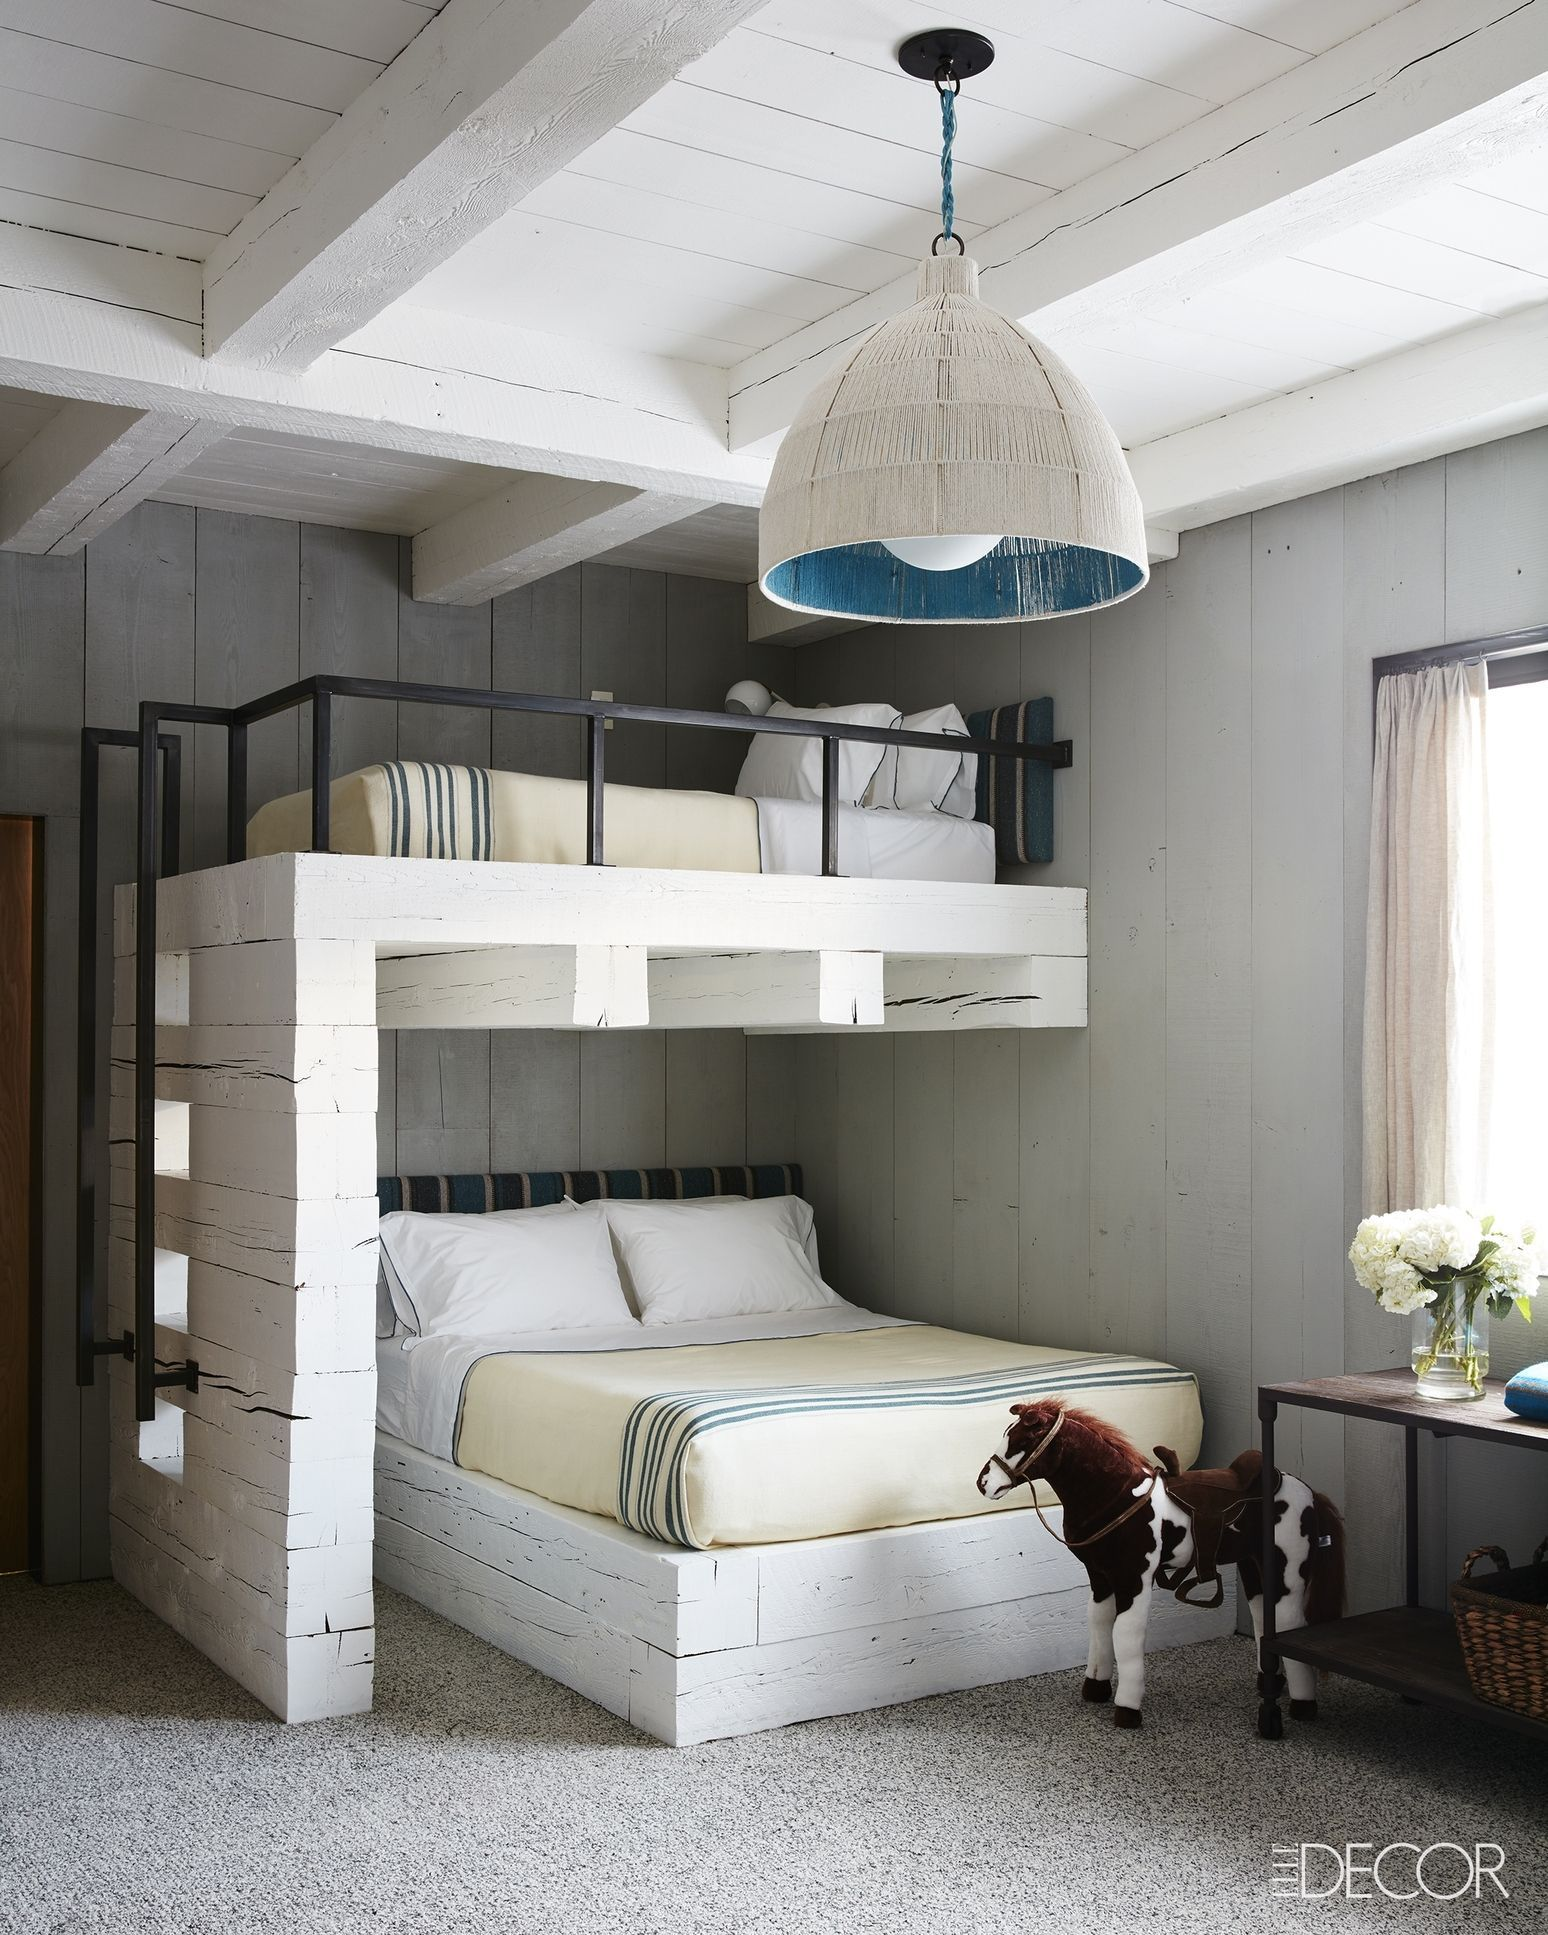 This Modern Mountain Home Brings Relaxed Luxury To New Heights Bunk Bed Rooms Bunk Bed Designs Bedroom Design